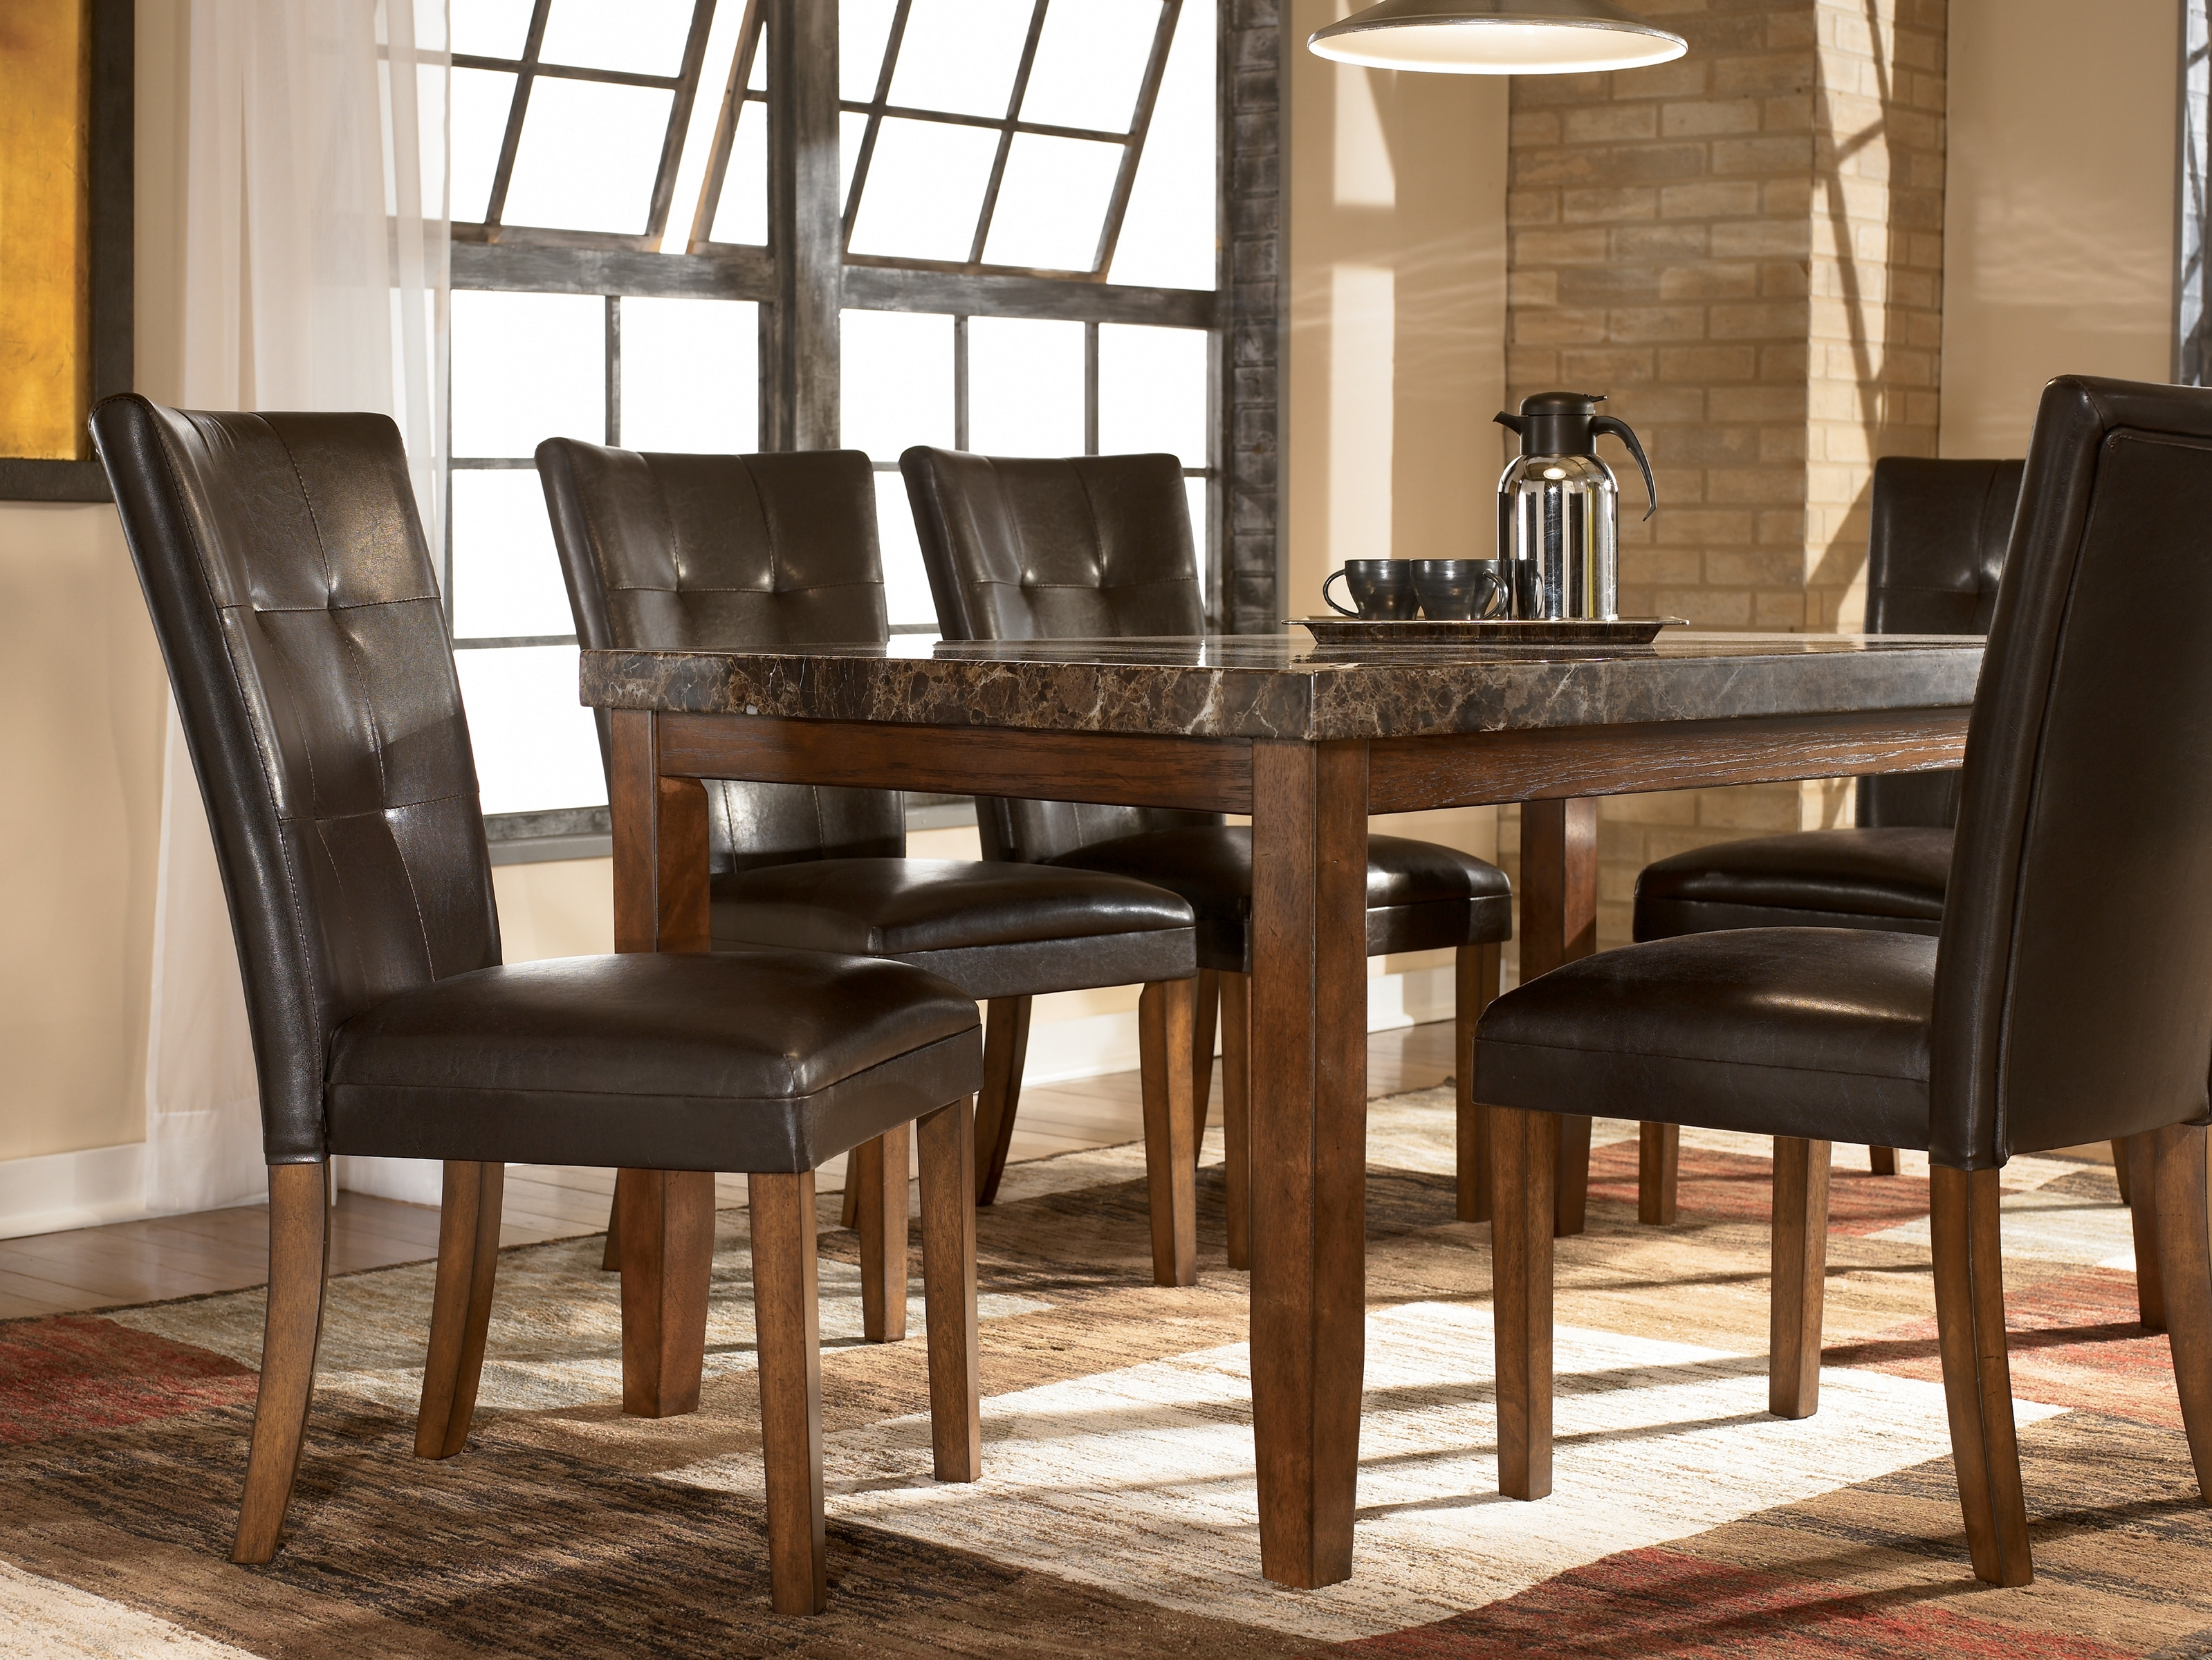 Sofa Chairs With Dining Table With Regard To Trendy Northpoint Home Furnishings Dining Room Furniture In Durango (View 12 of 15)